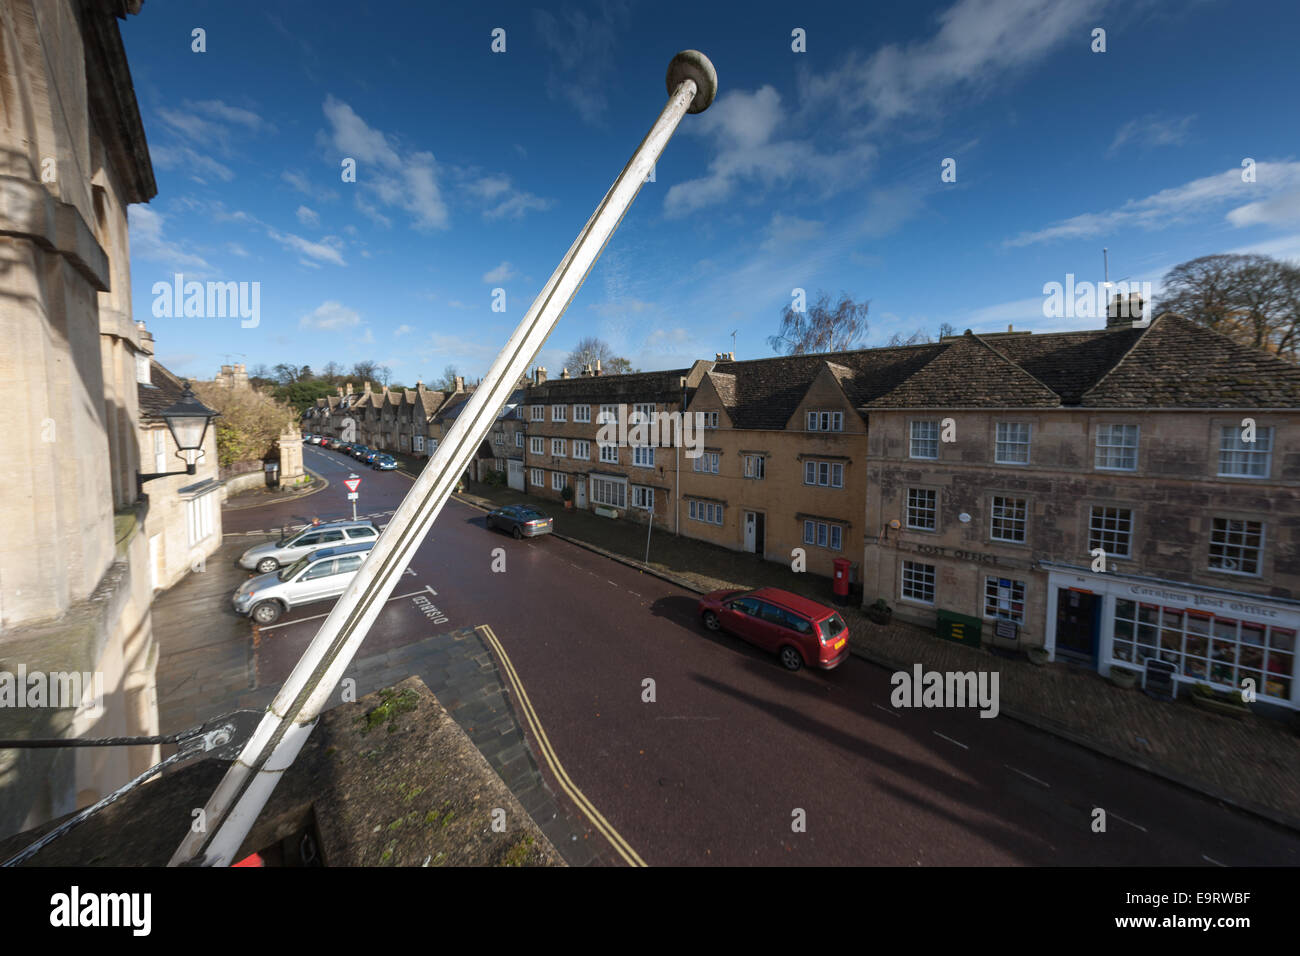 View of Corsham High Street from the balcony of the town hall Stock Photo